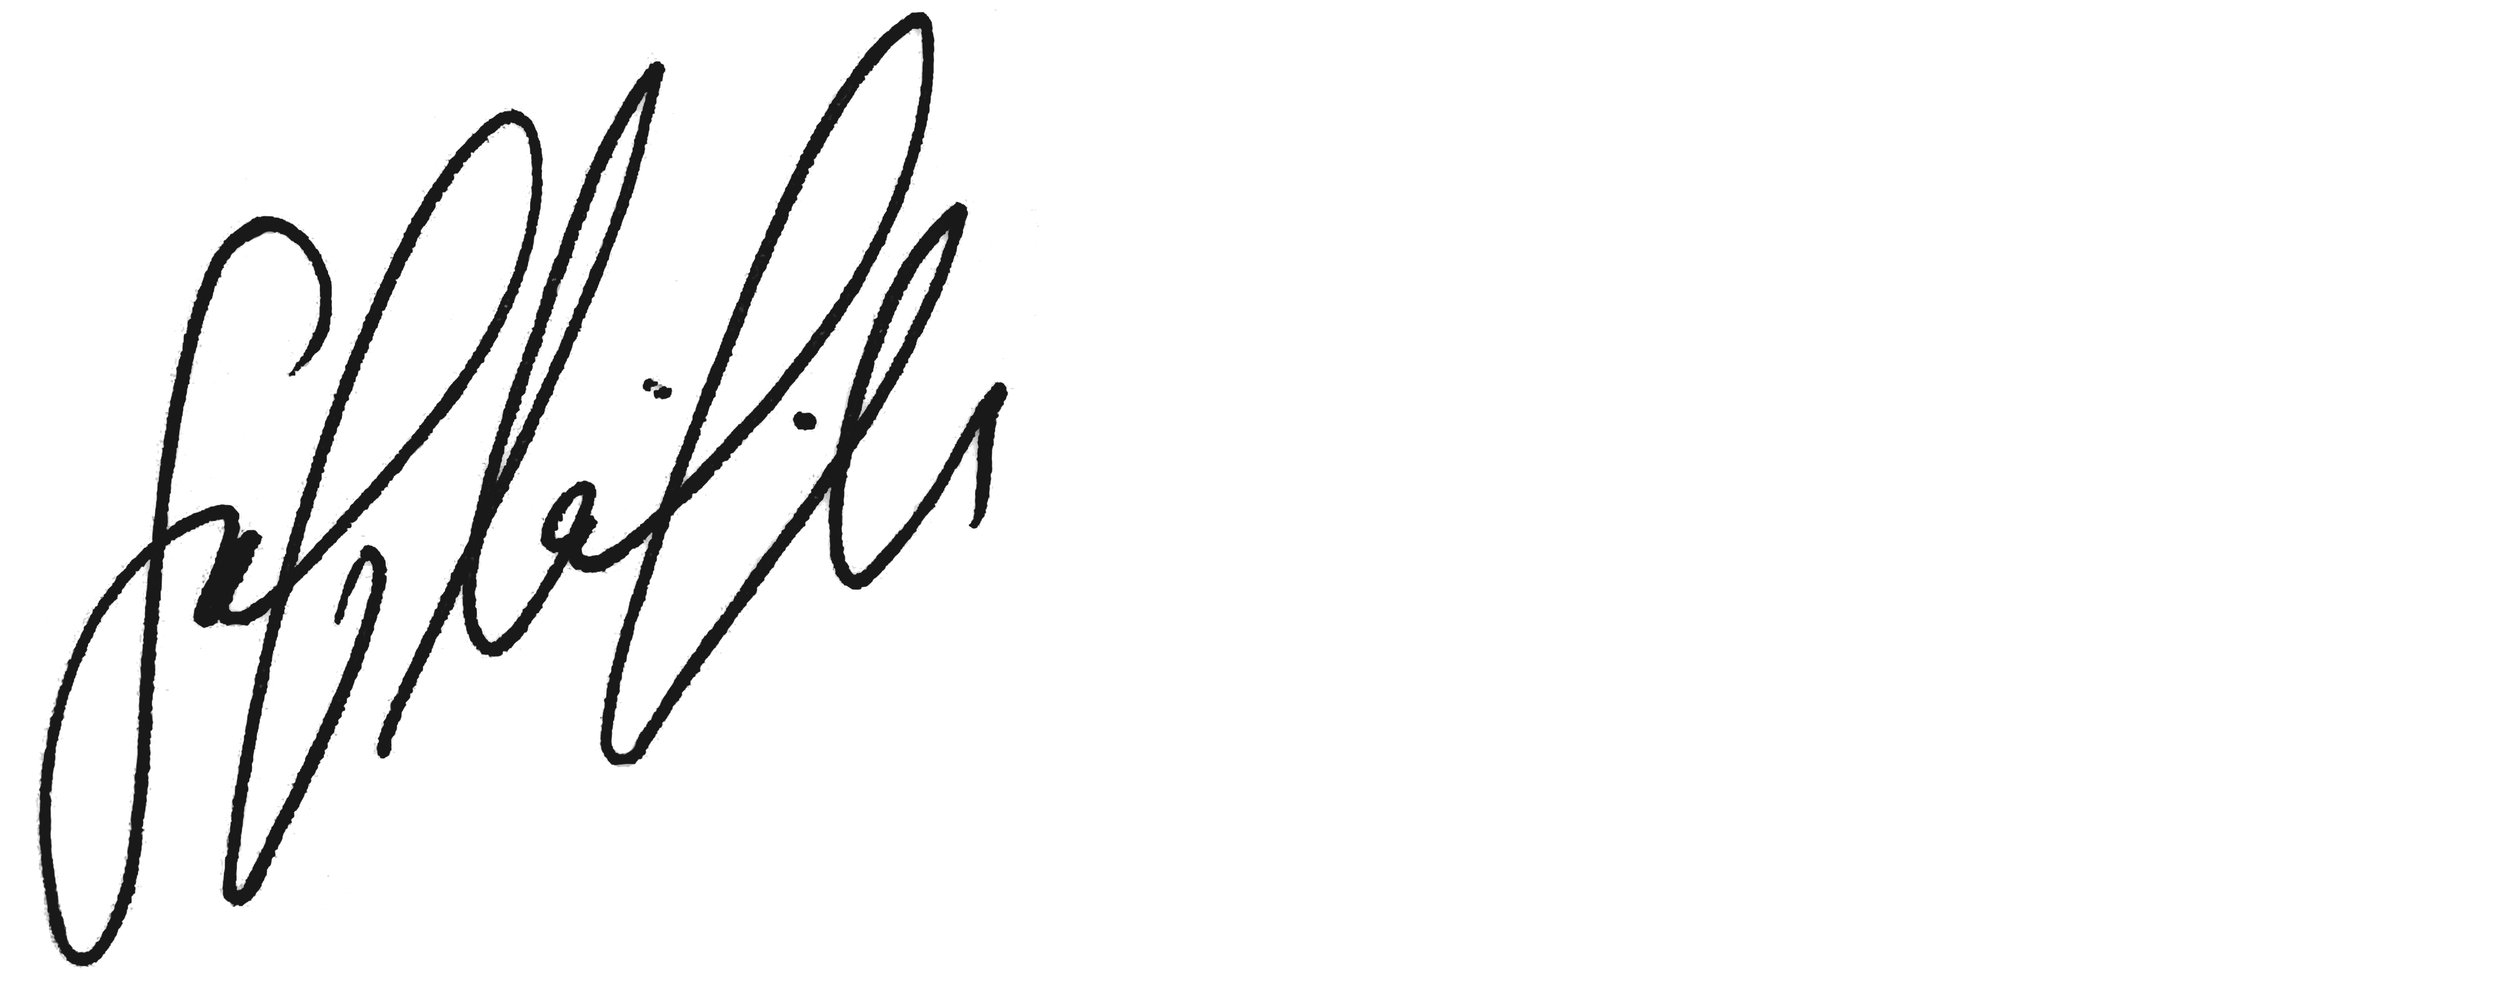 Sofia Signature copy.jpg